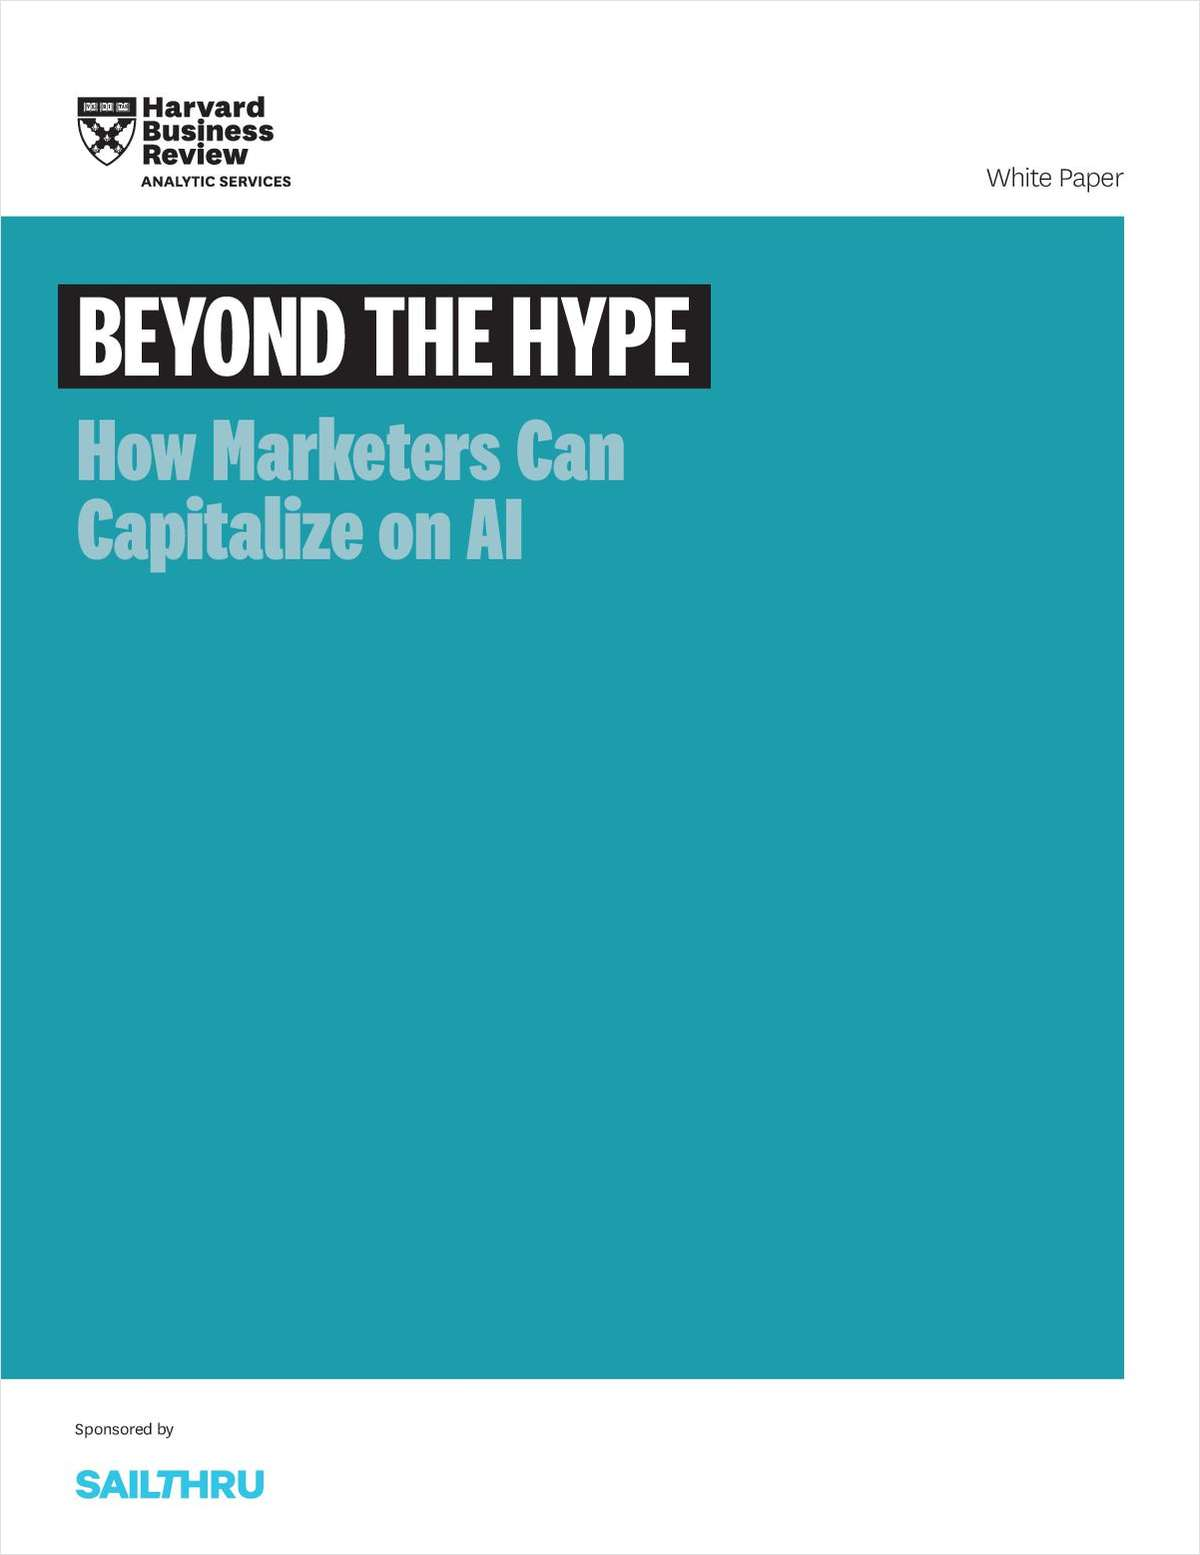 Beyond The Hype - How Marketers Can Capitalize on AI